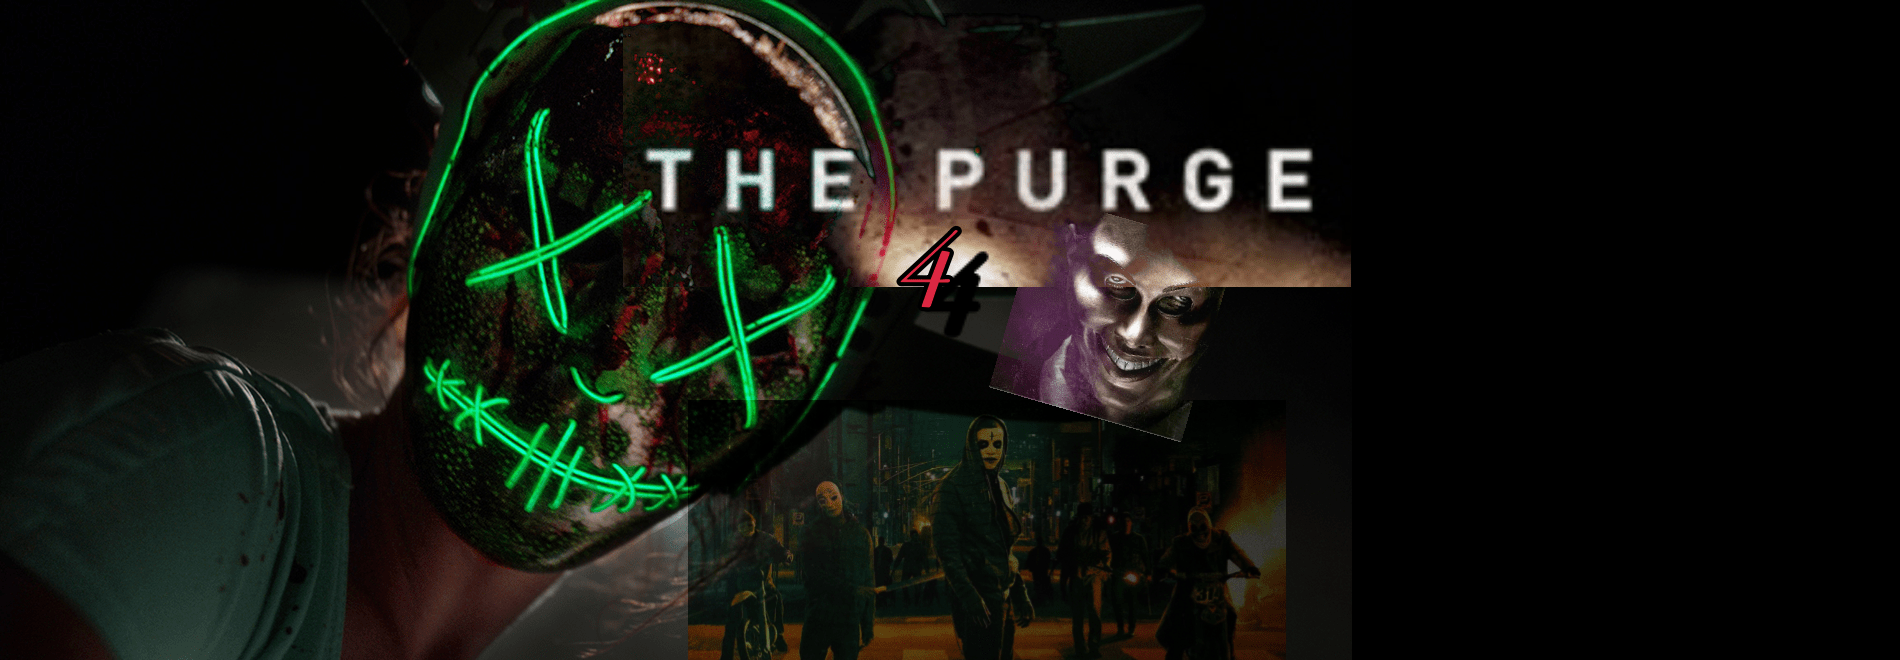 The Purge : Que donne la série des origines du film ?